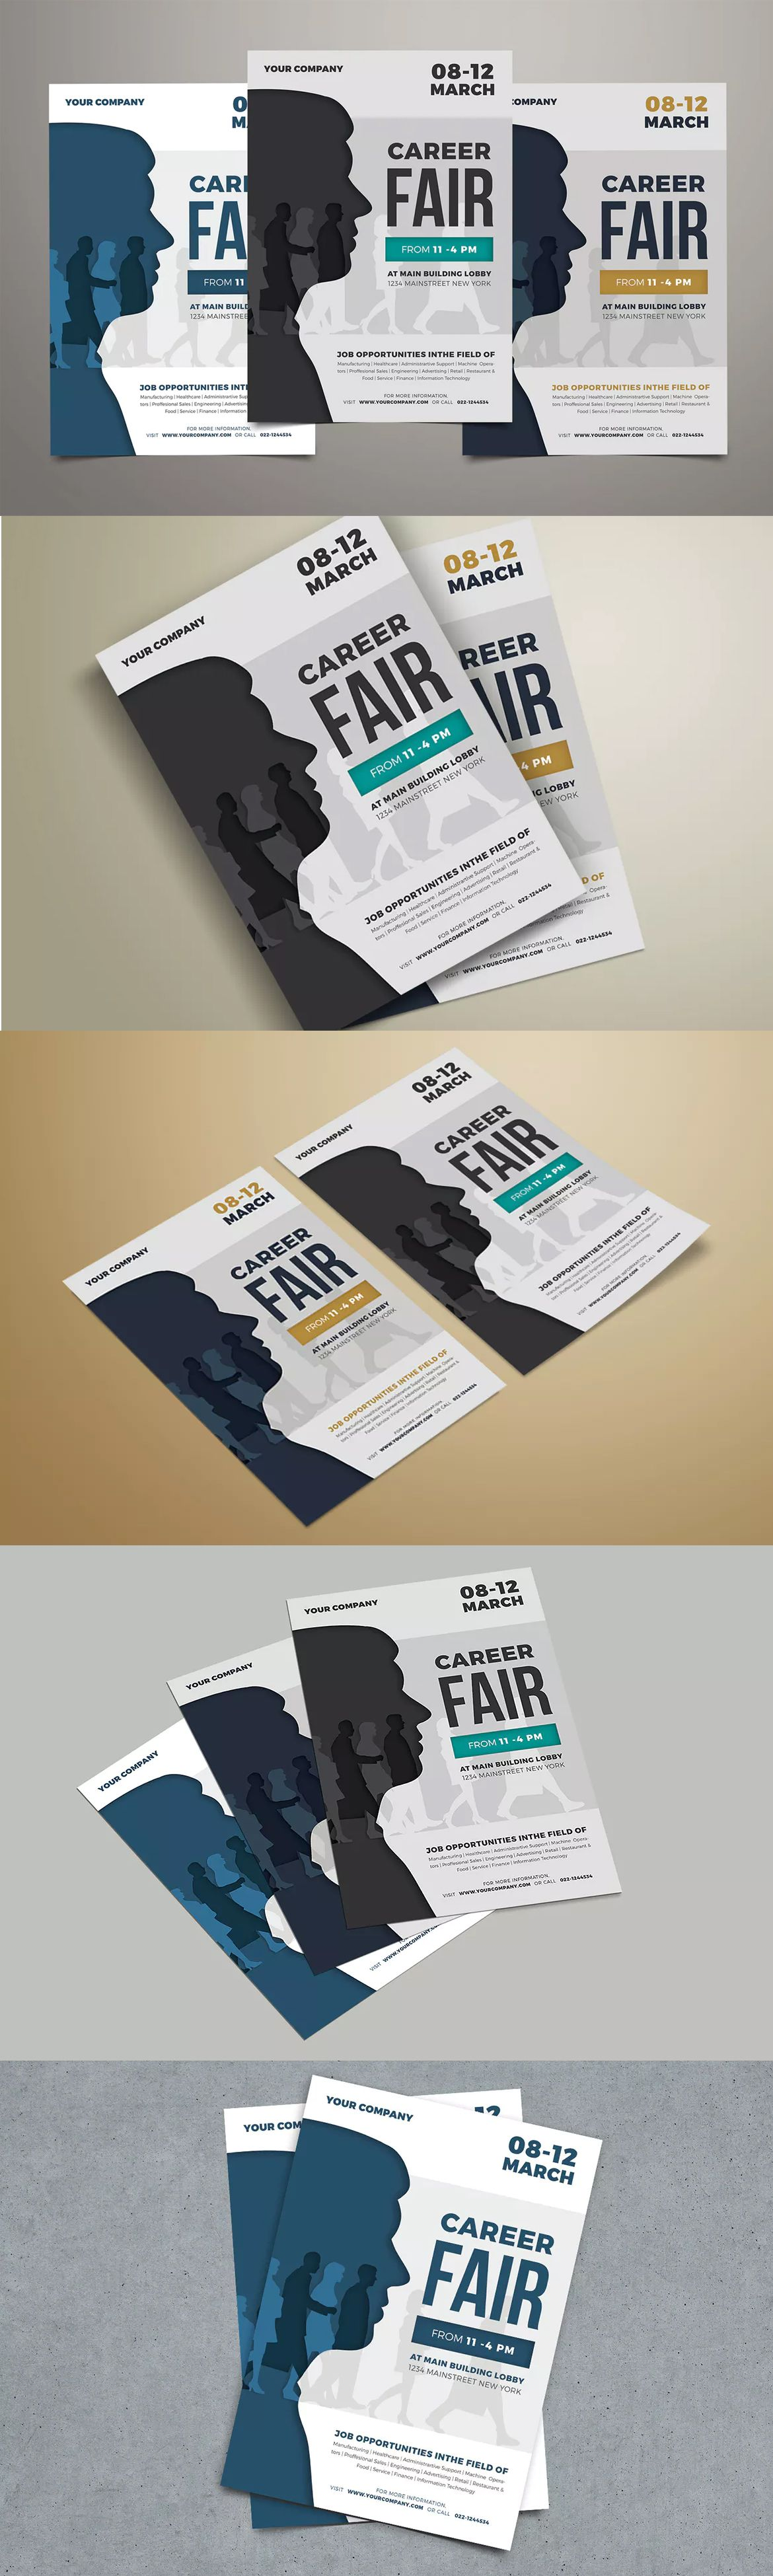 Job Fair Event Flyer Template Psd  A Unlimiteddownloads  Flyer